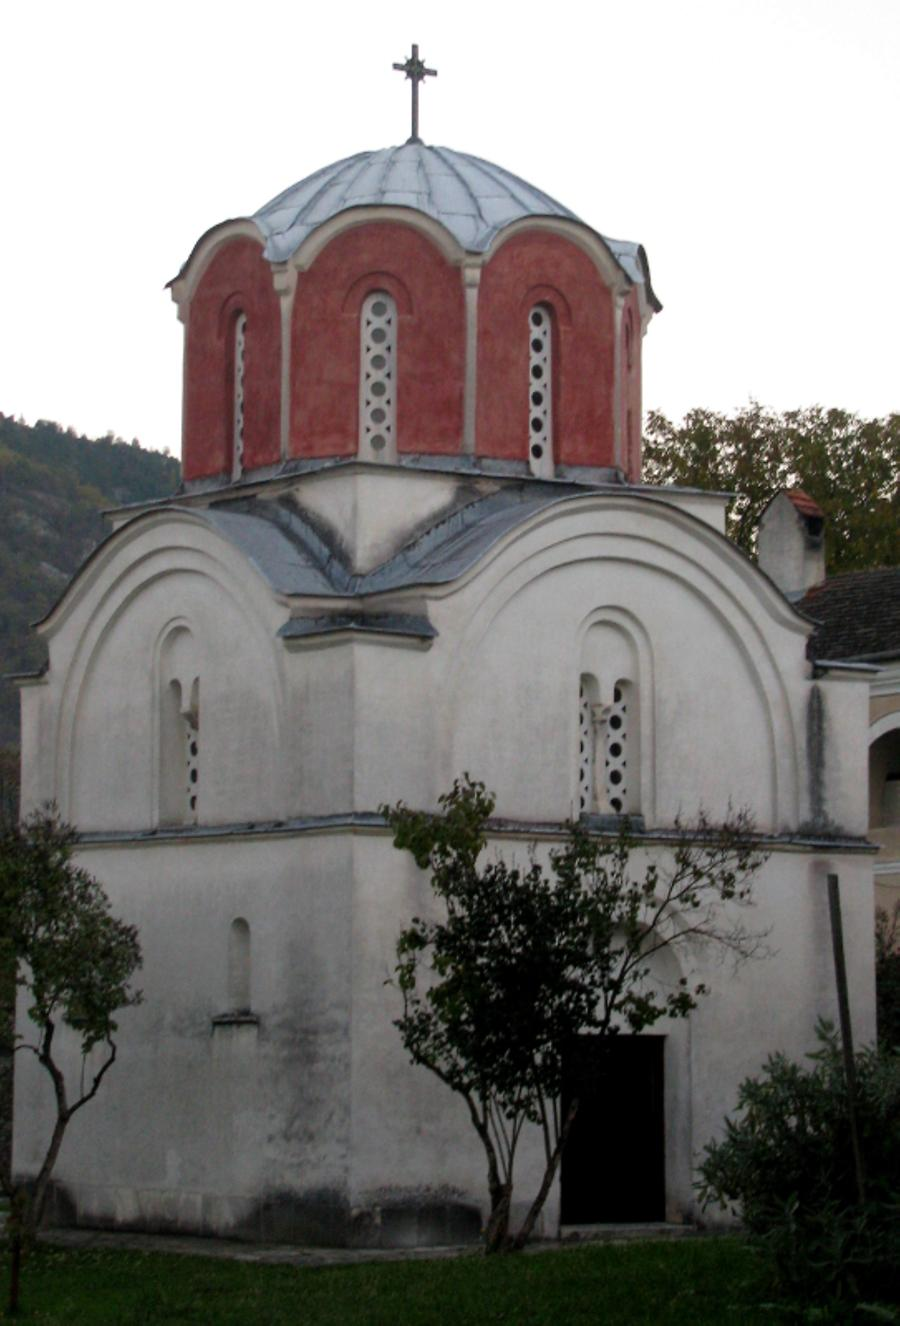 King's church. Photo: Žarko Mijailović, 2015, Photo made available by Mathematical Institute SANU, Belgrade